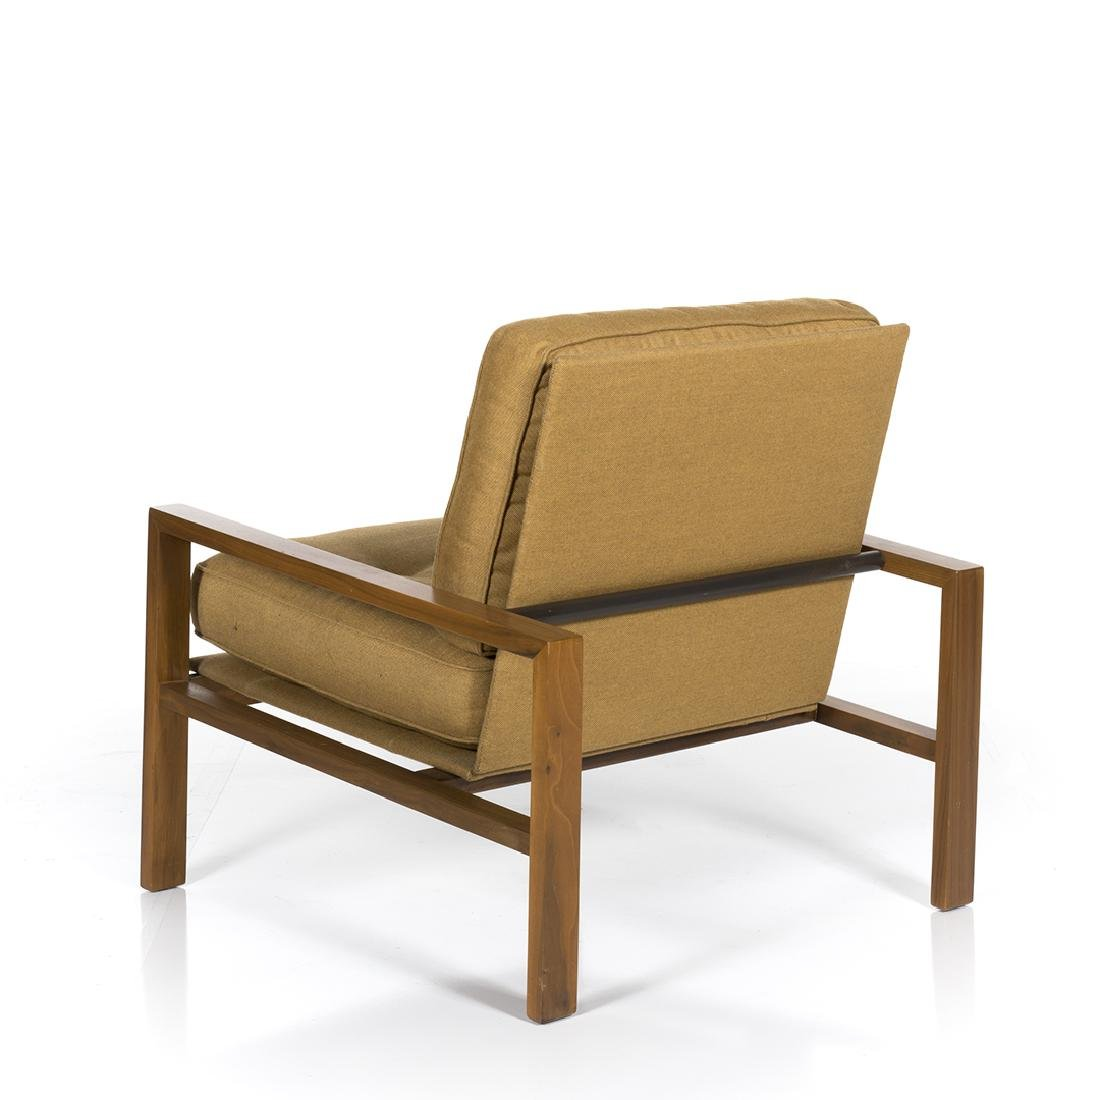 Van Keppel and Green Prototype Lounge Chair - 3